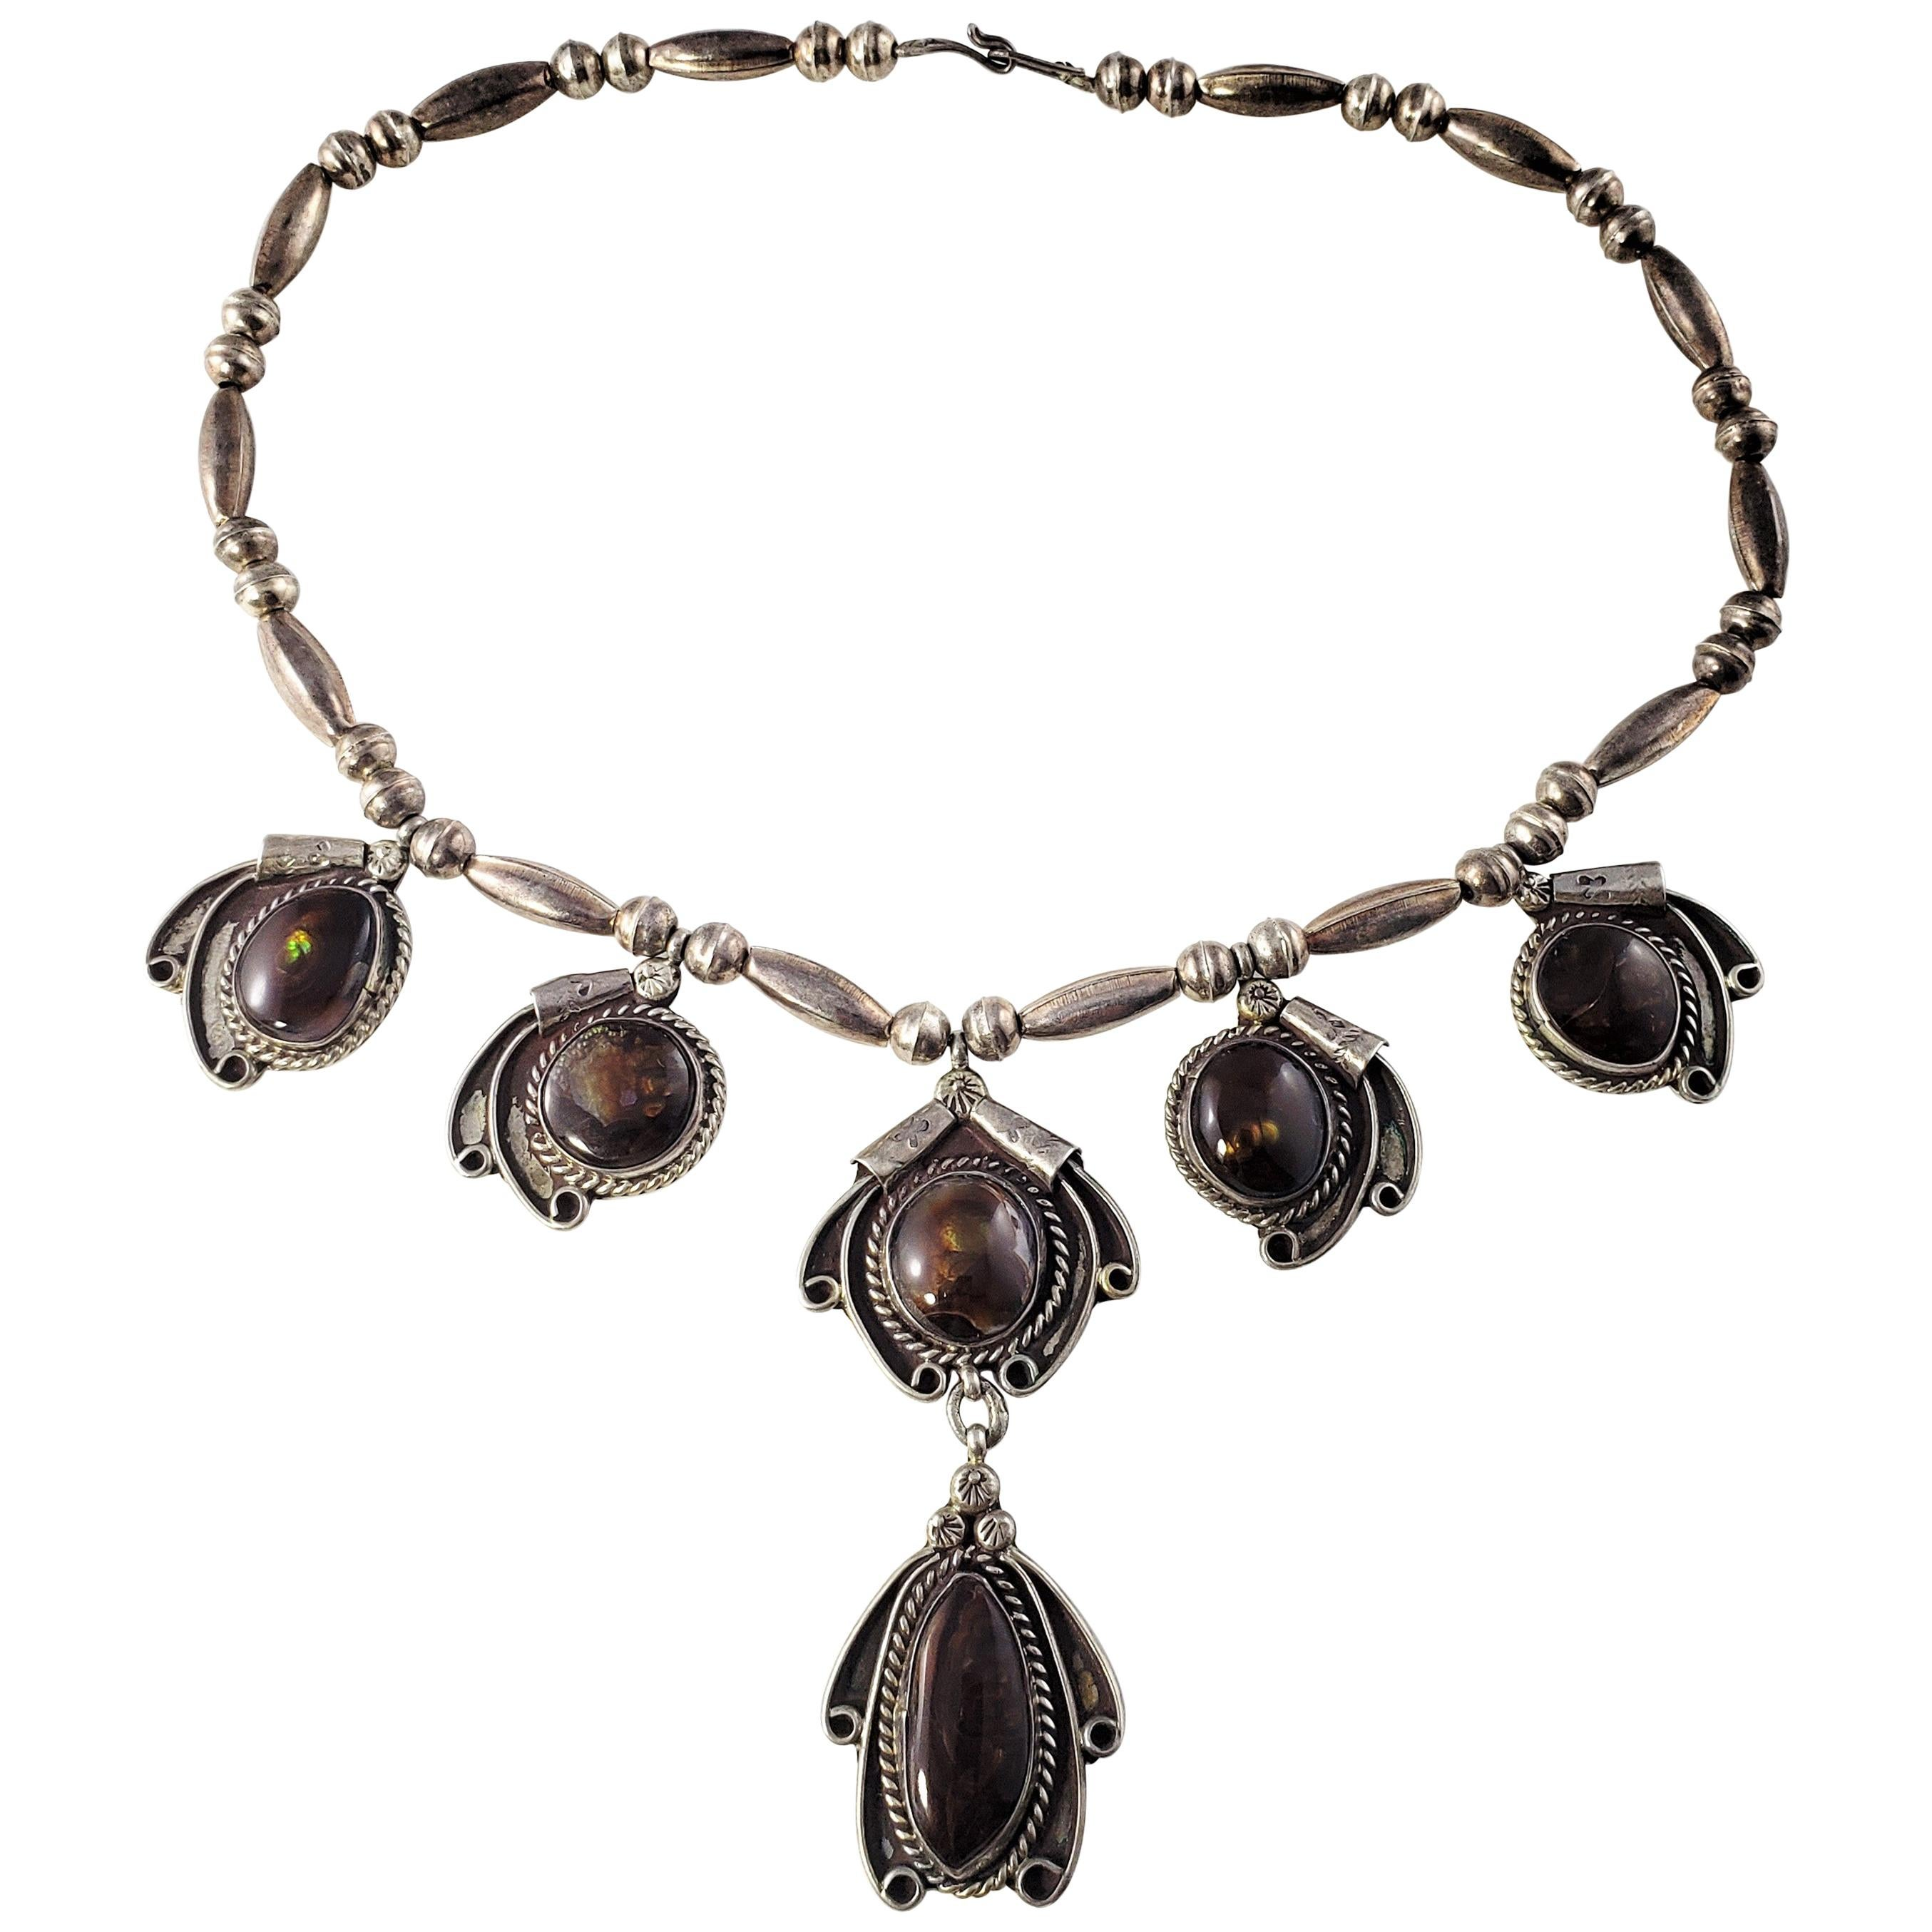 Native American Squash Blossom Style Sterling Silver Pietersite Necklace